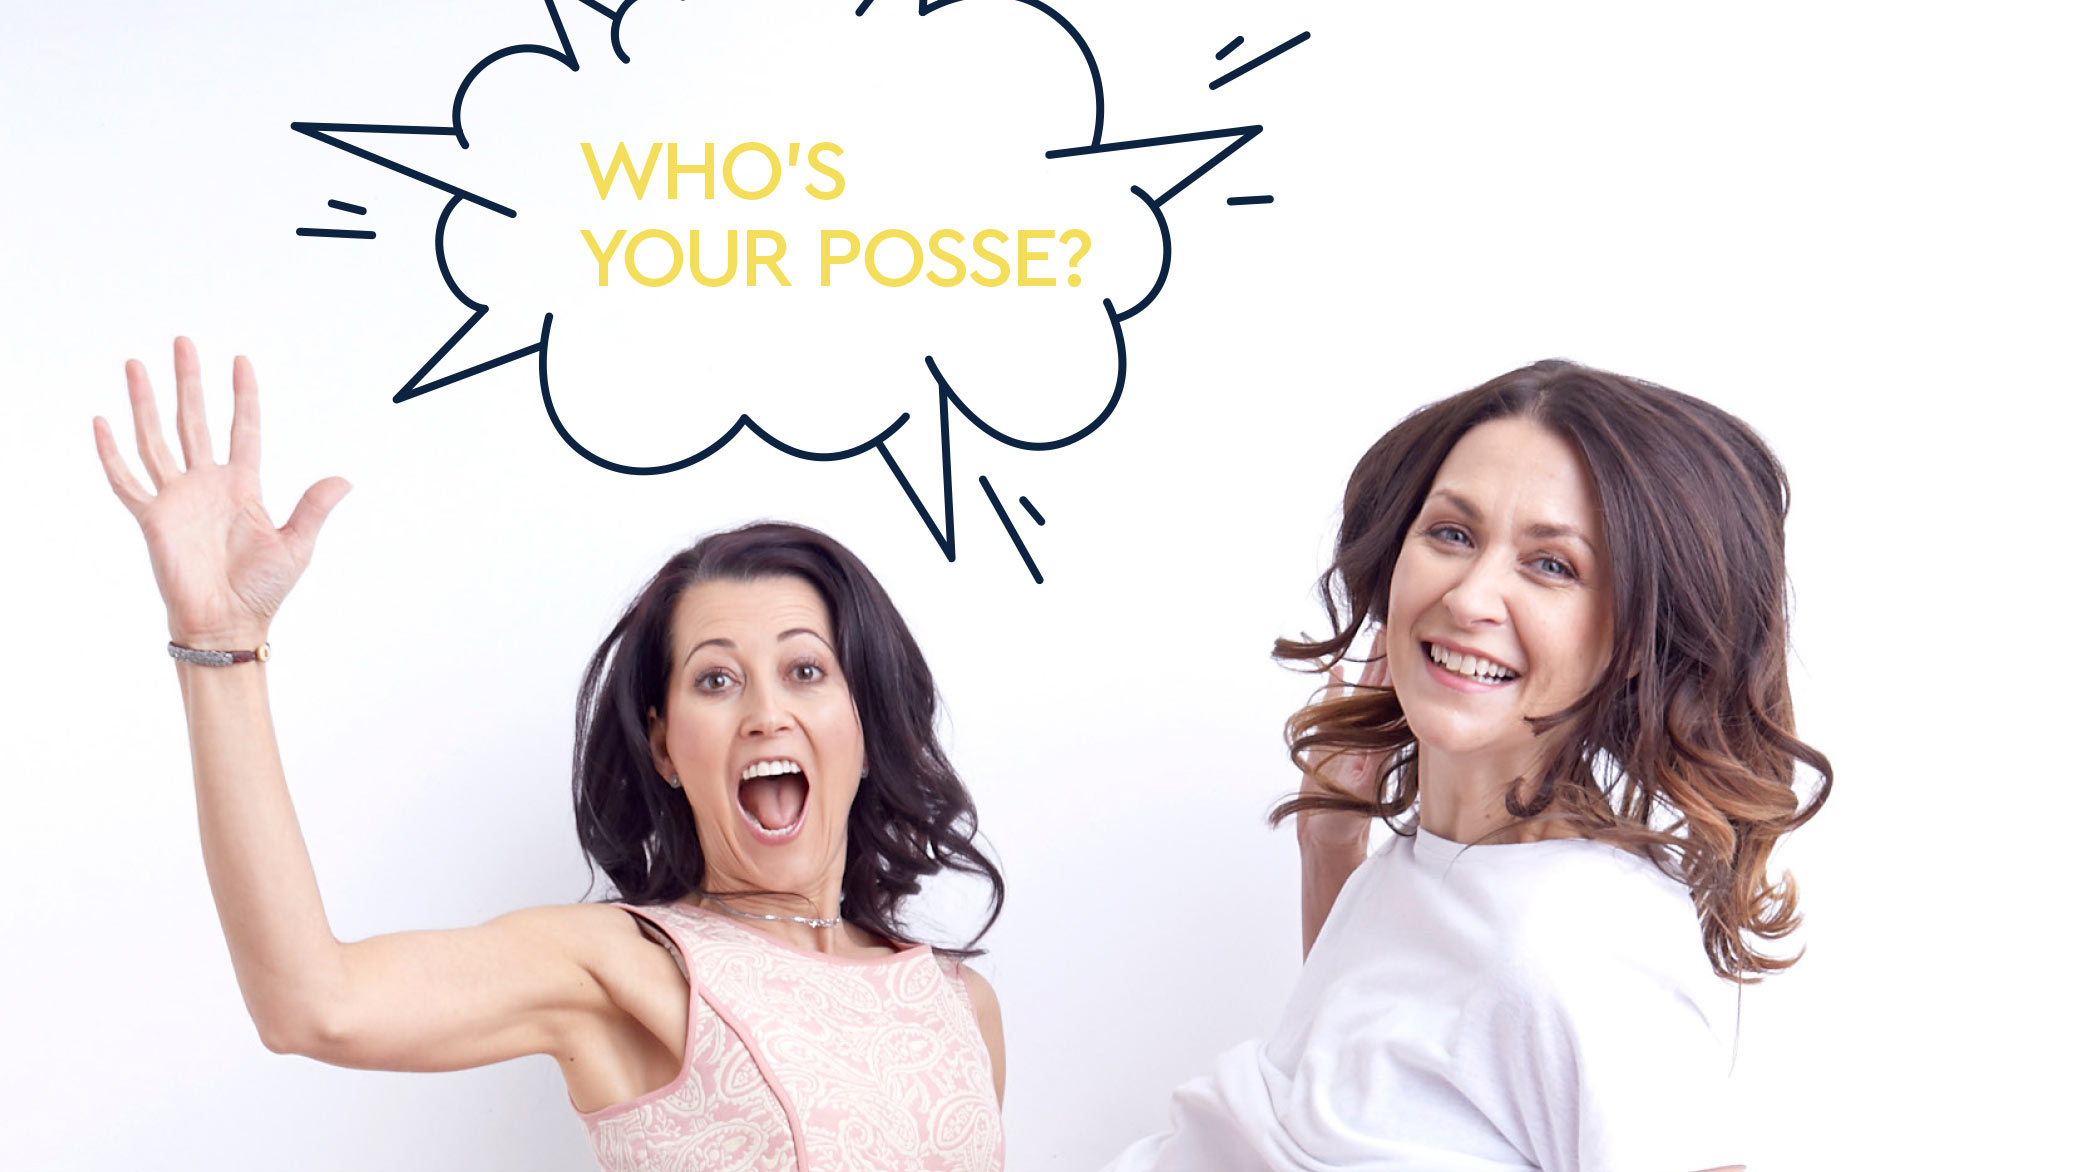 Who's your posse?